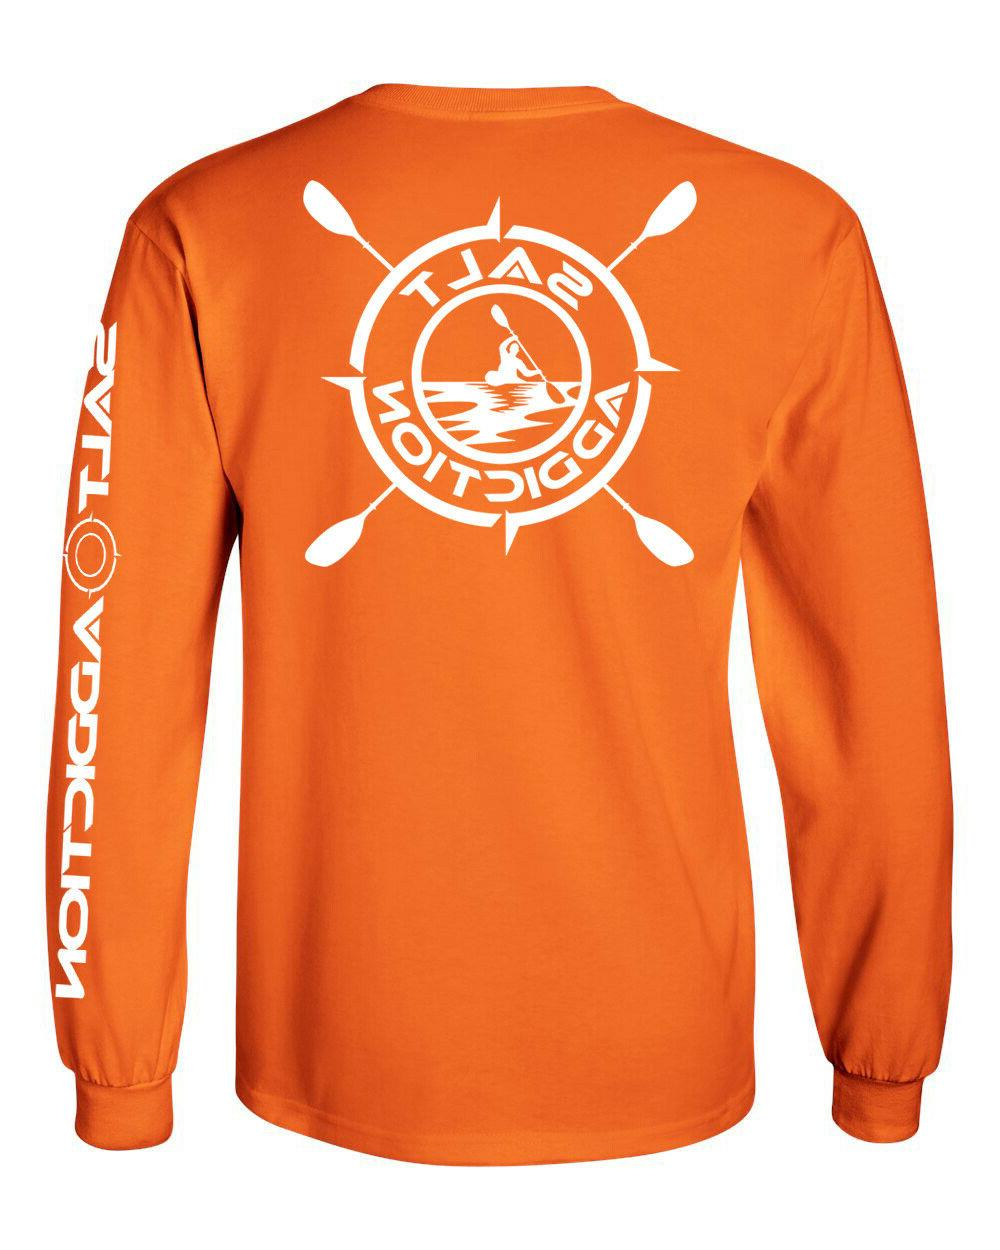 t shirt long sleeve men s saltwater